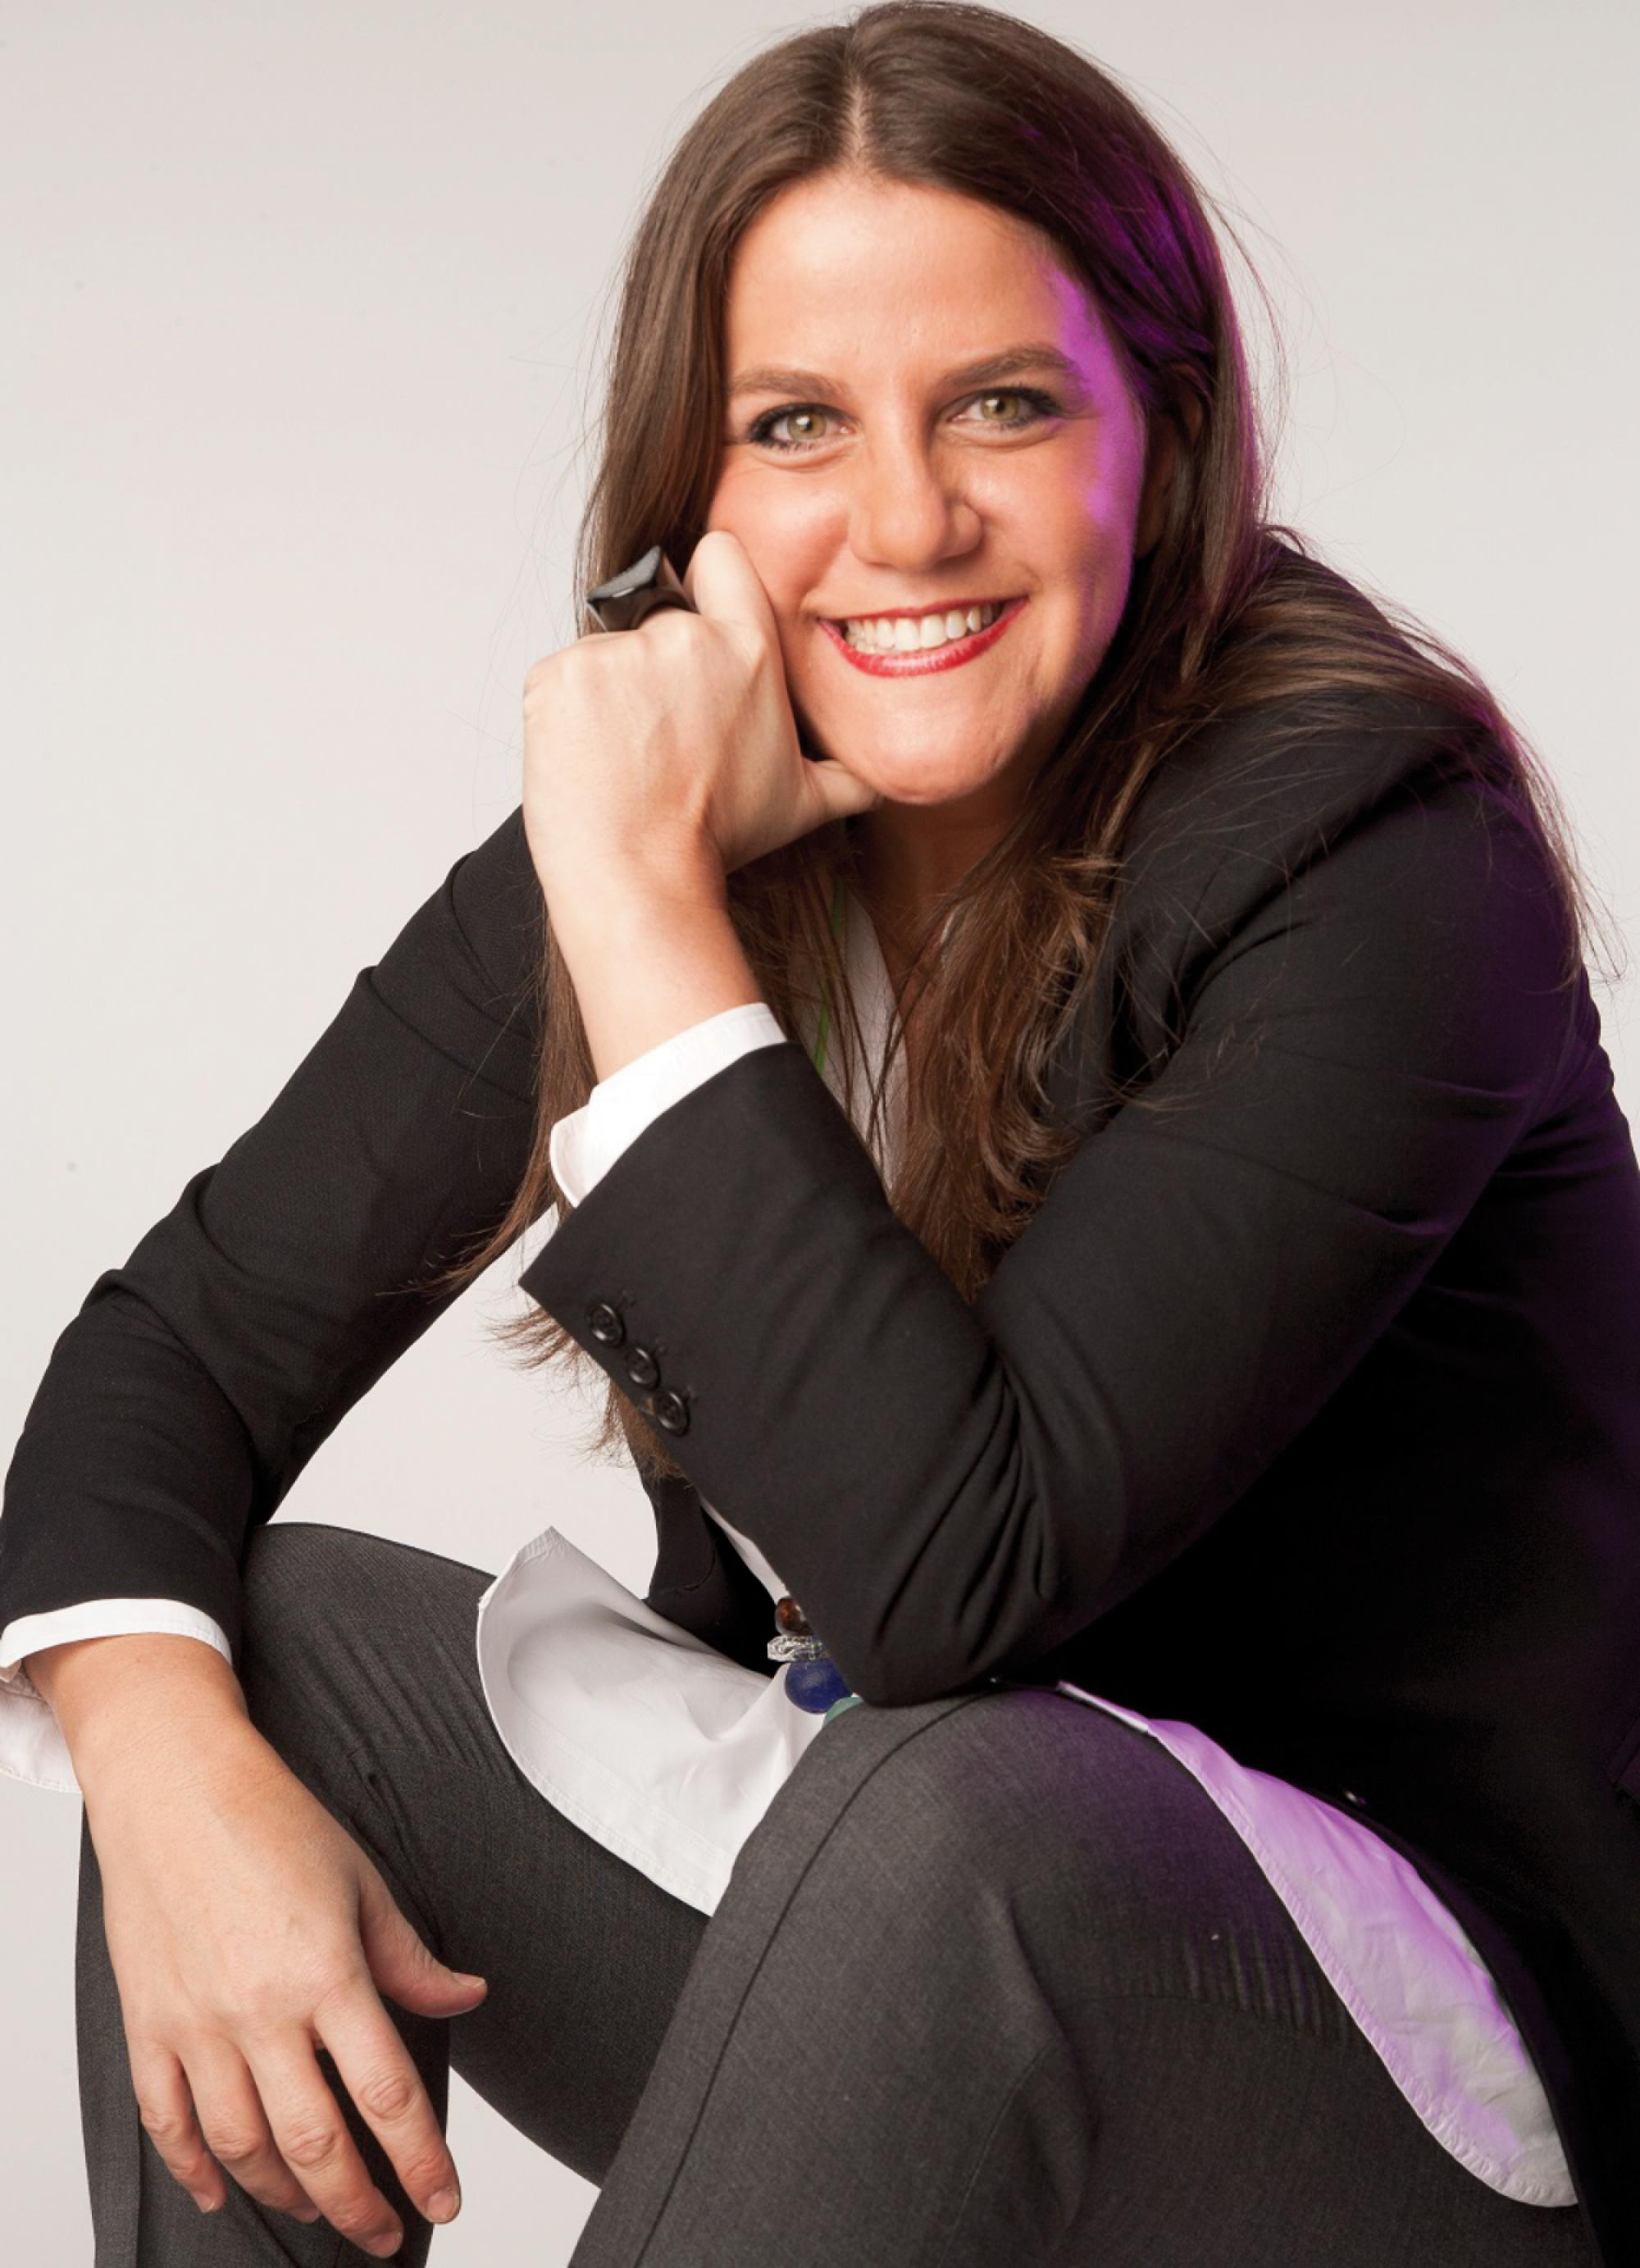 Rachel Shechtman, founder and CEO of STORY, is one of the 16 conference speakers.